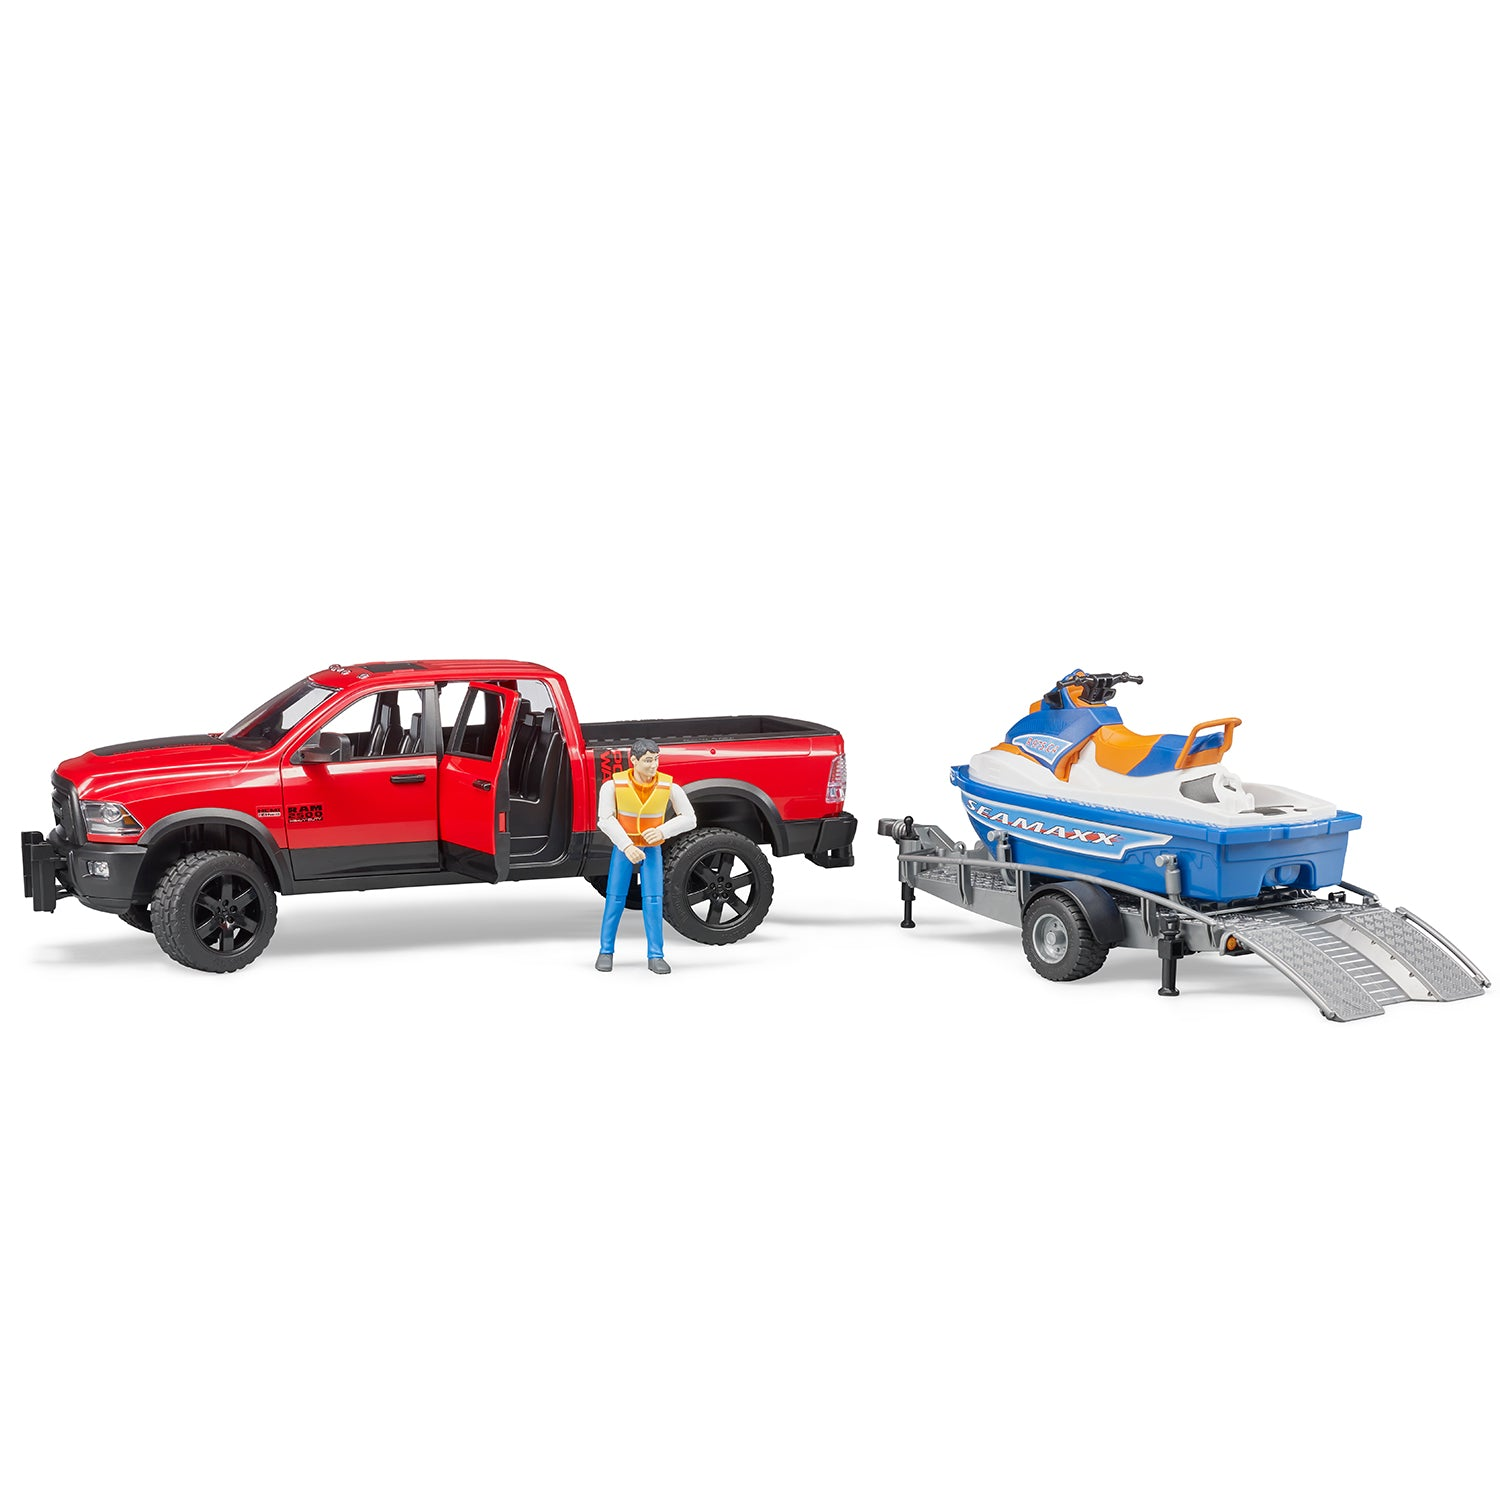 RAM 2500 Power Wagon + Trailer and Personal Water Craft with driver